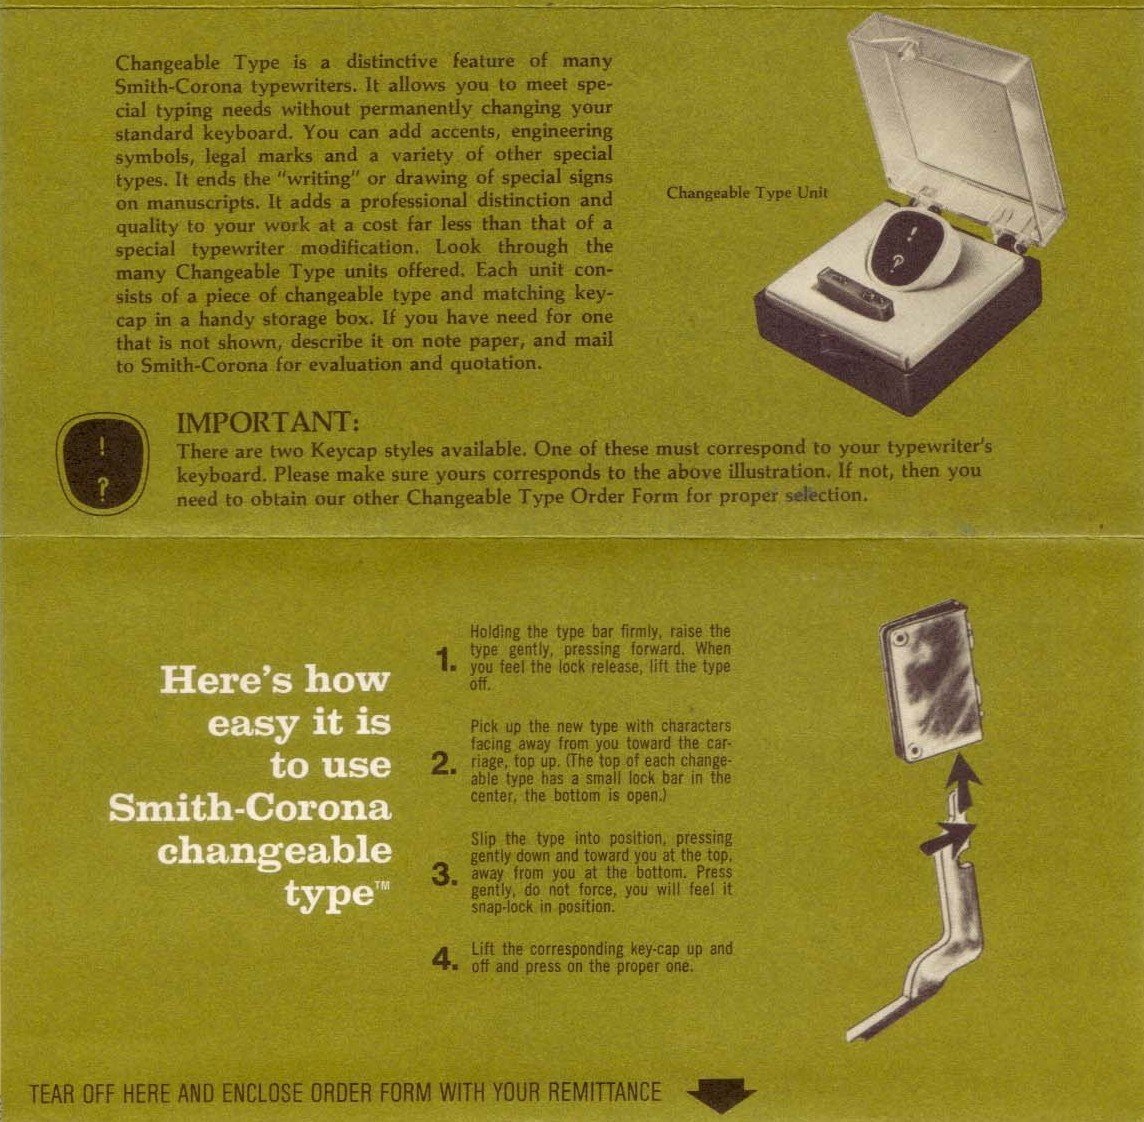 A 1969 brochure from Smith-Corona showing their interchangeable interrobang key.